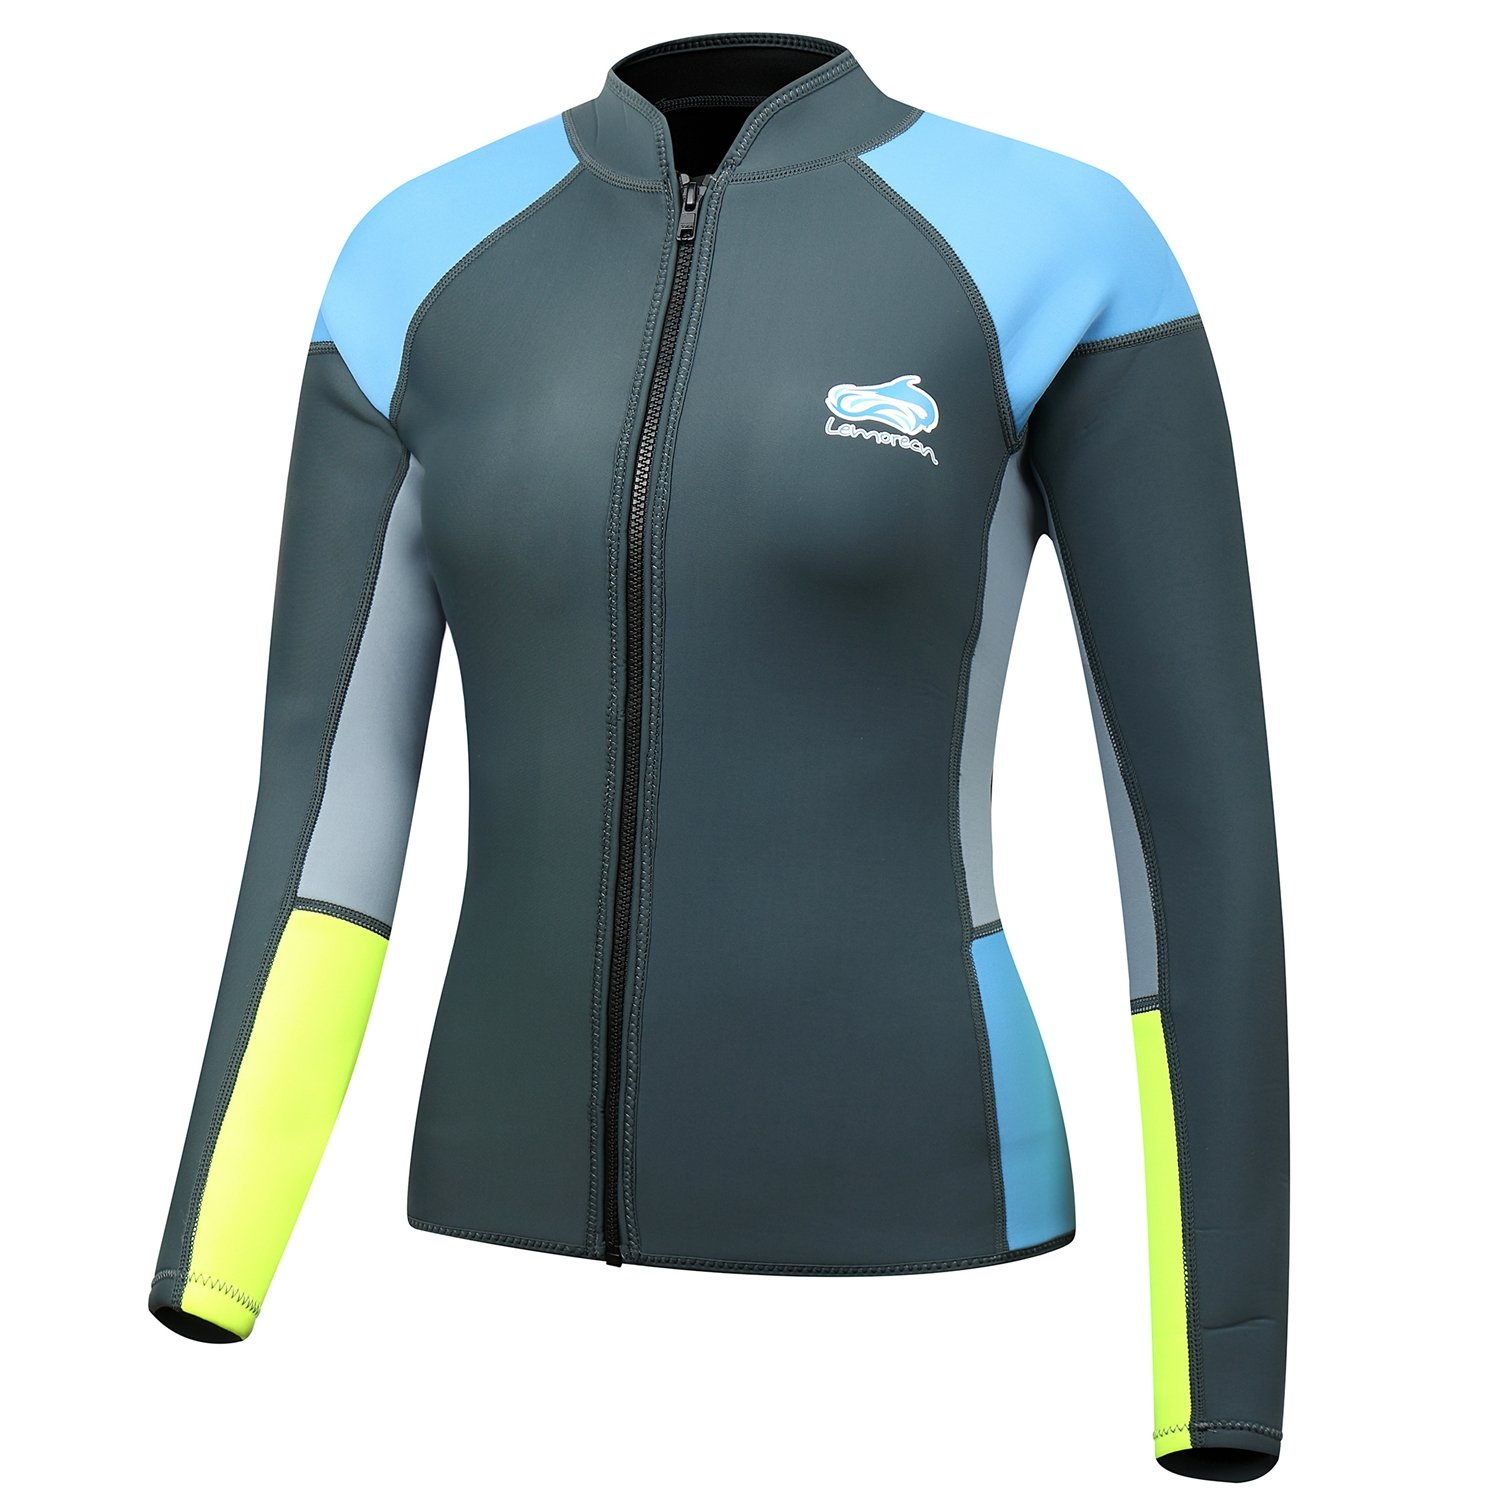 Lemorecn Women's 1.5mm Wetsuits Jacket Long Sleeve Neoprene Wetsuits Top (2047G12) by Lemorecn